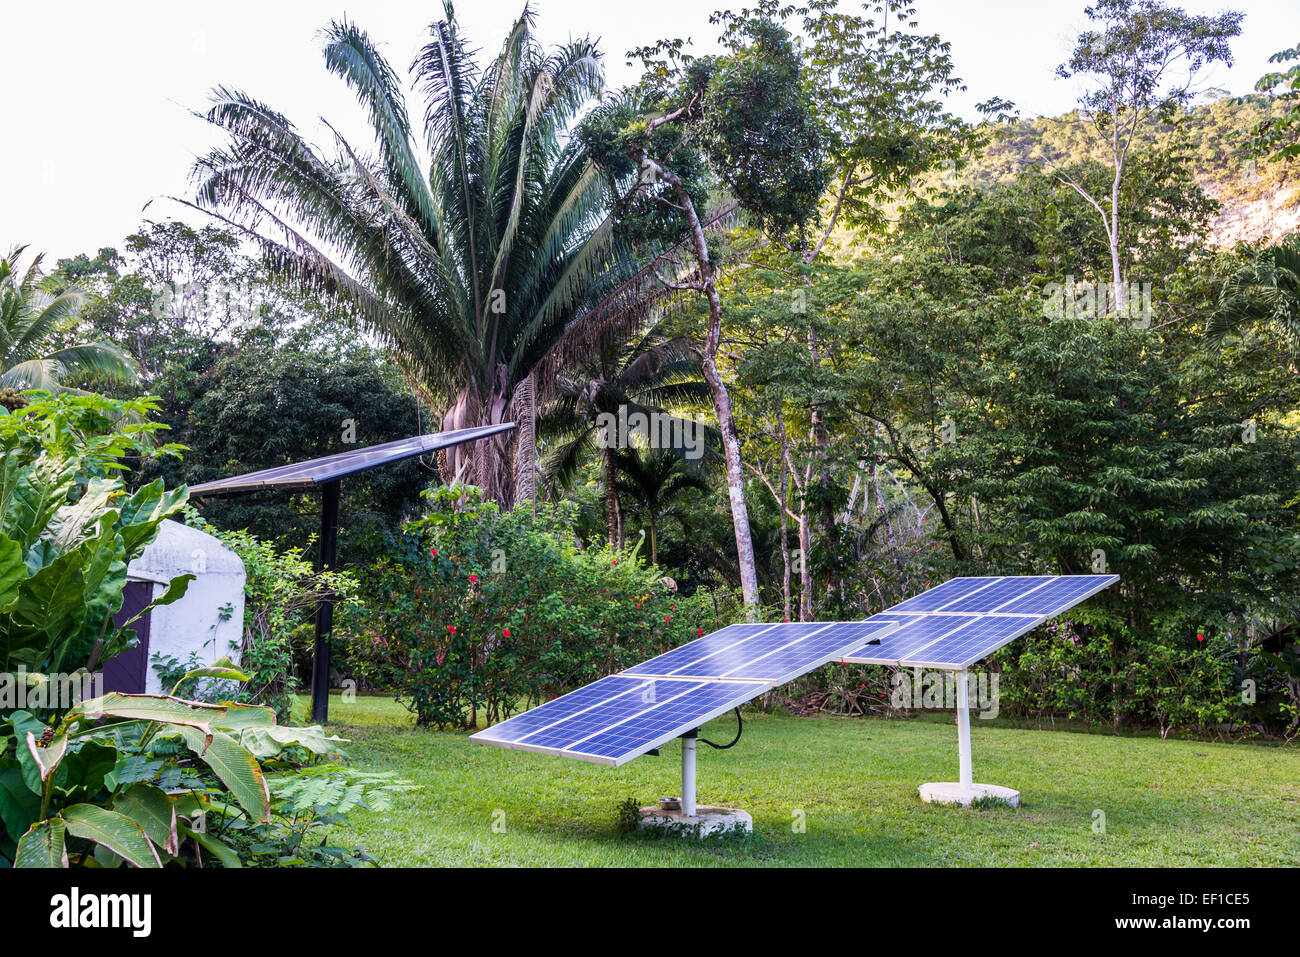 Solar Panels Generating Electricity In A Backyard. Belize, Central America